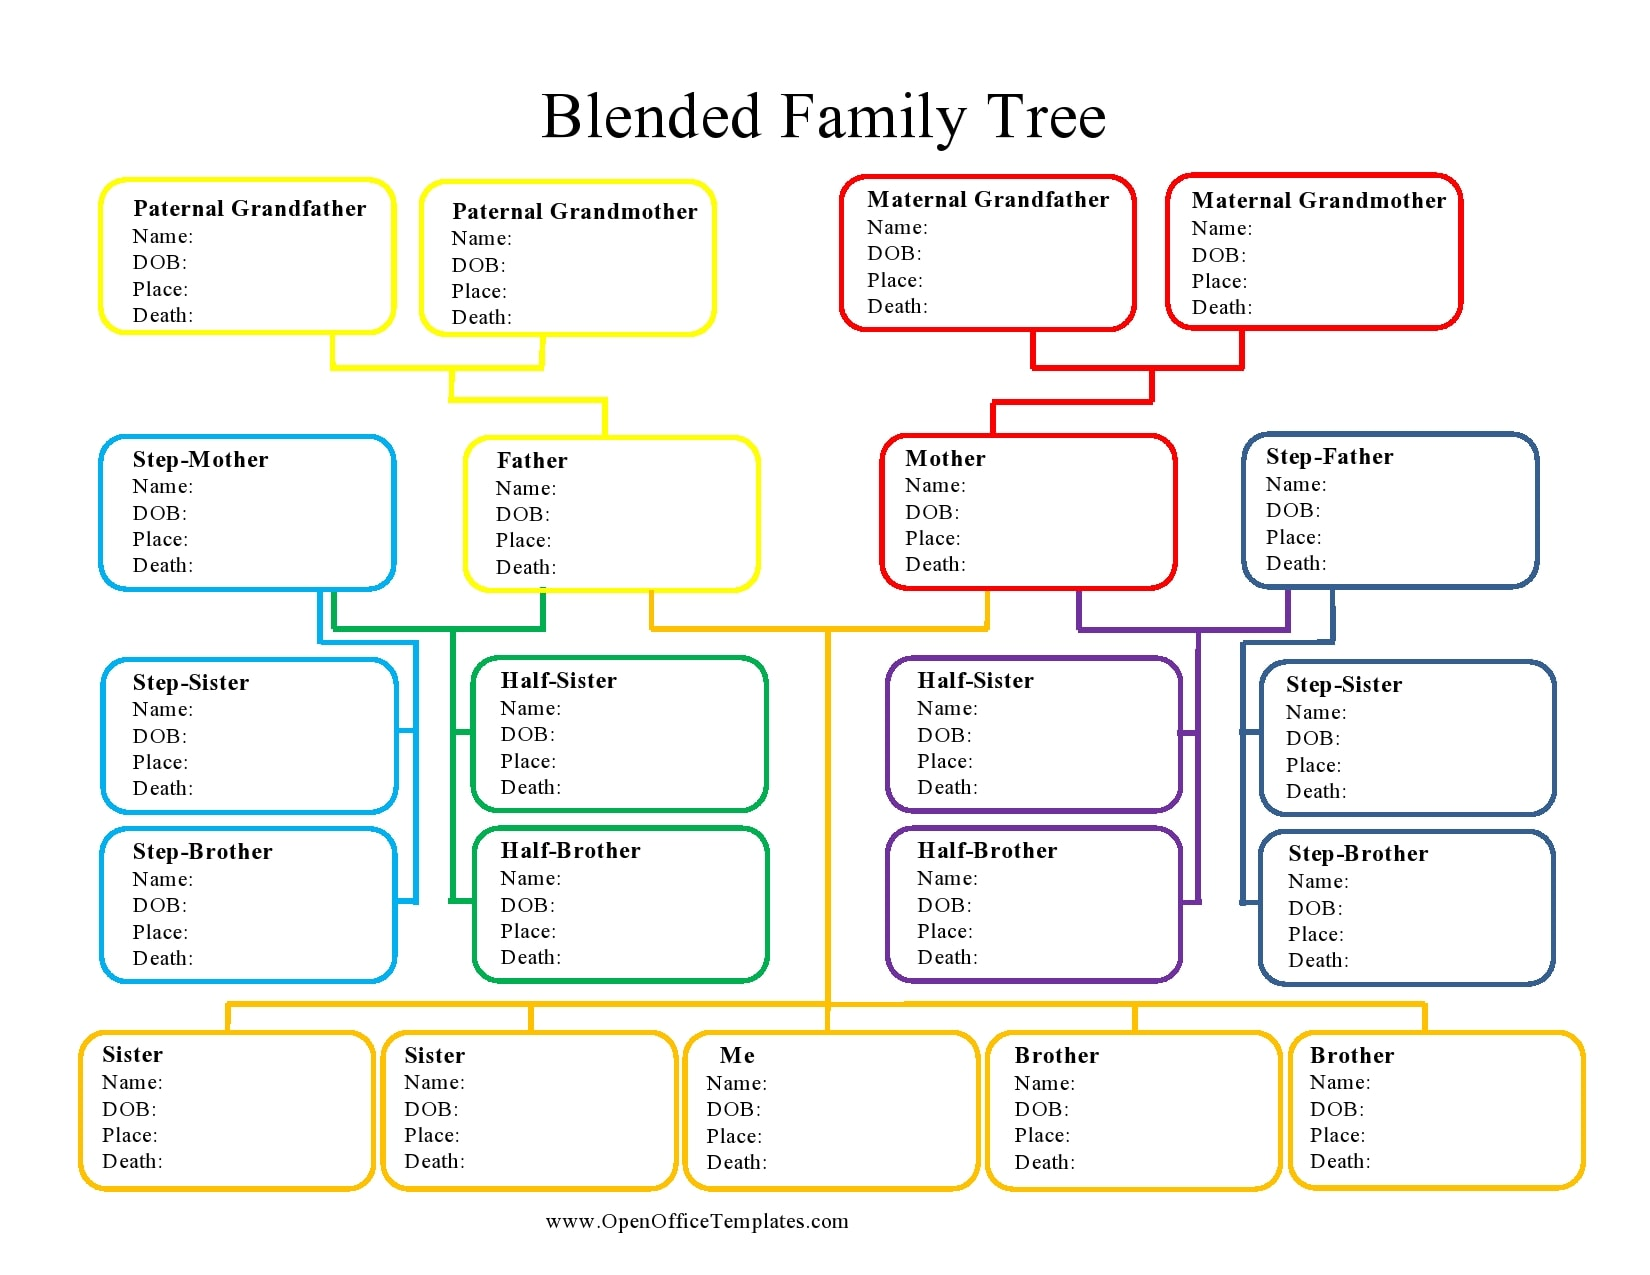 21 Editable Family Tree Templates [21% Free] - TemplateArchive Throughout Fill In The Blank Family Tree Template